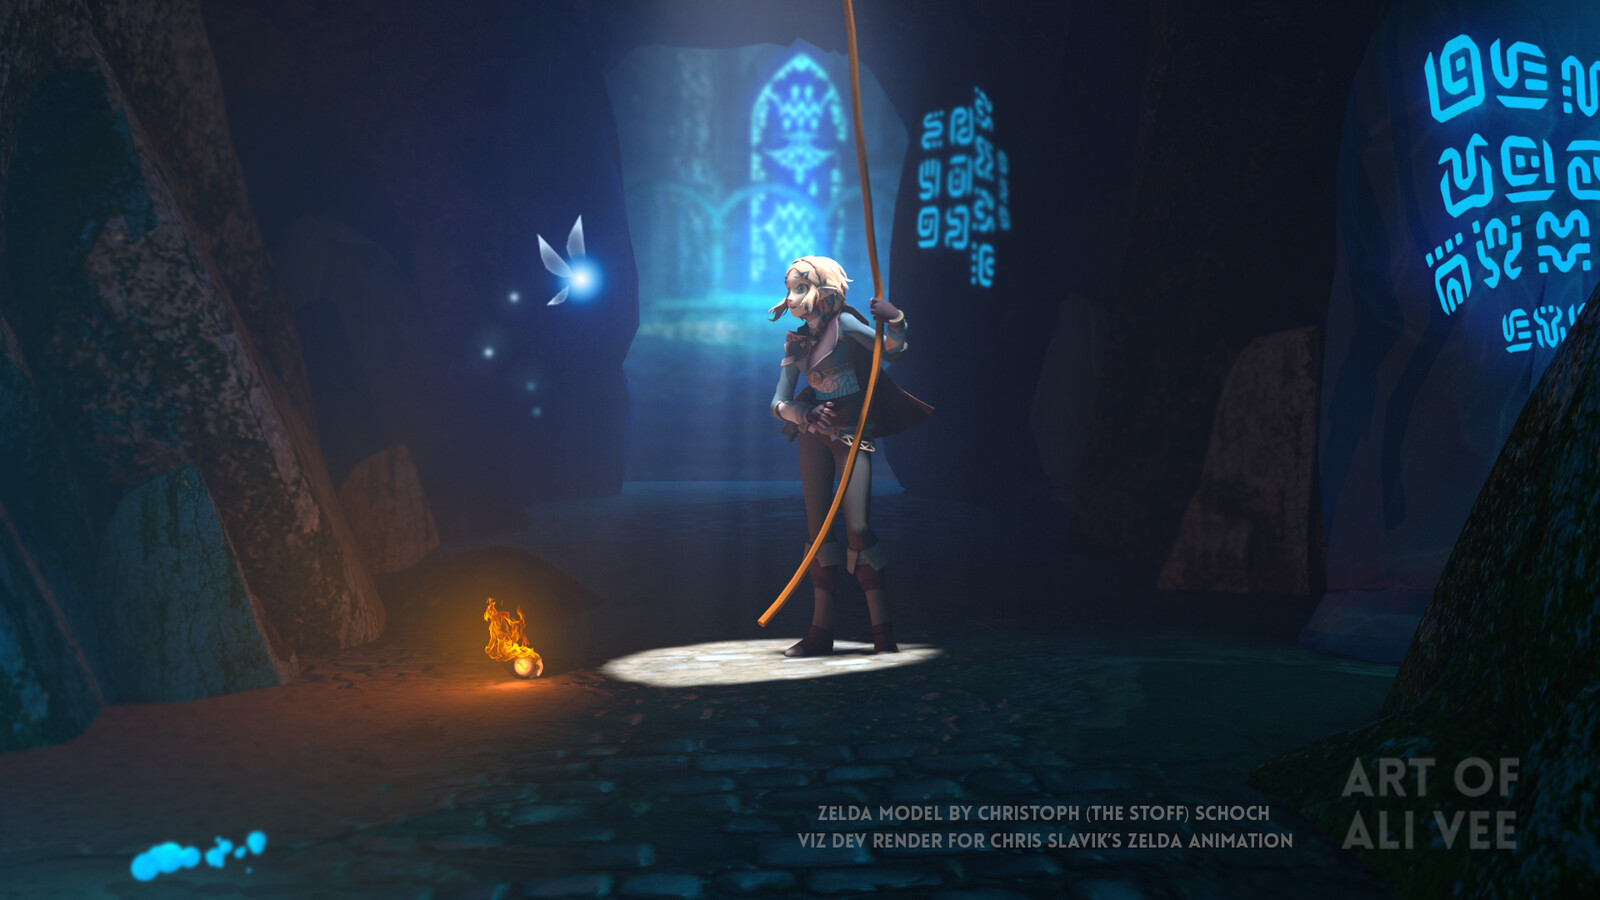 My visual development work texturing and lighting a Zelda scene for a quick 10 second animation (Maya and Vray) Zelda character is made by Christoph (The Stoff) Schoch